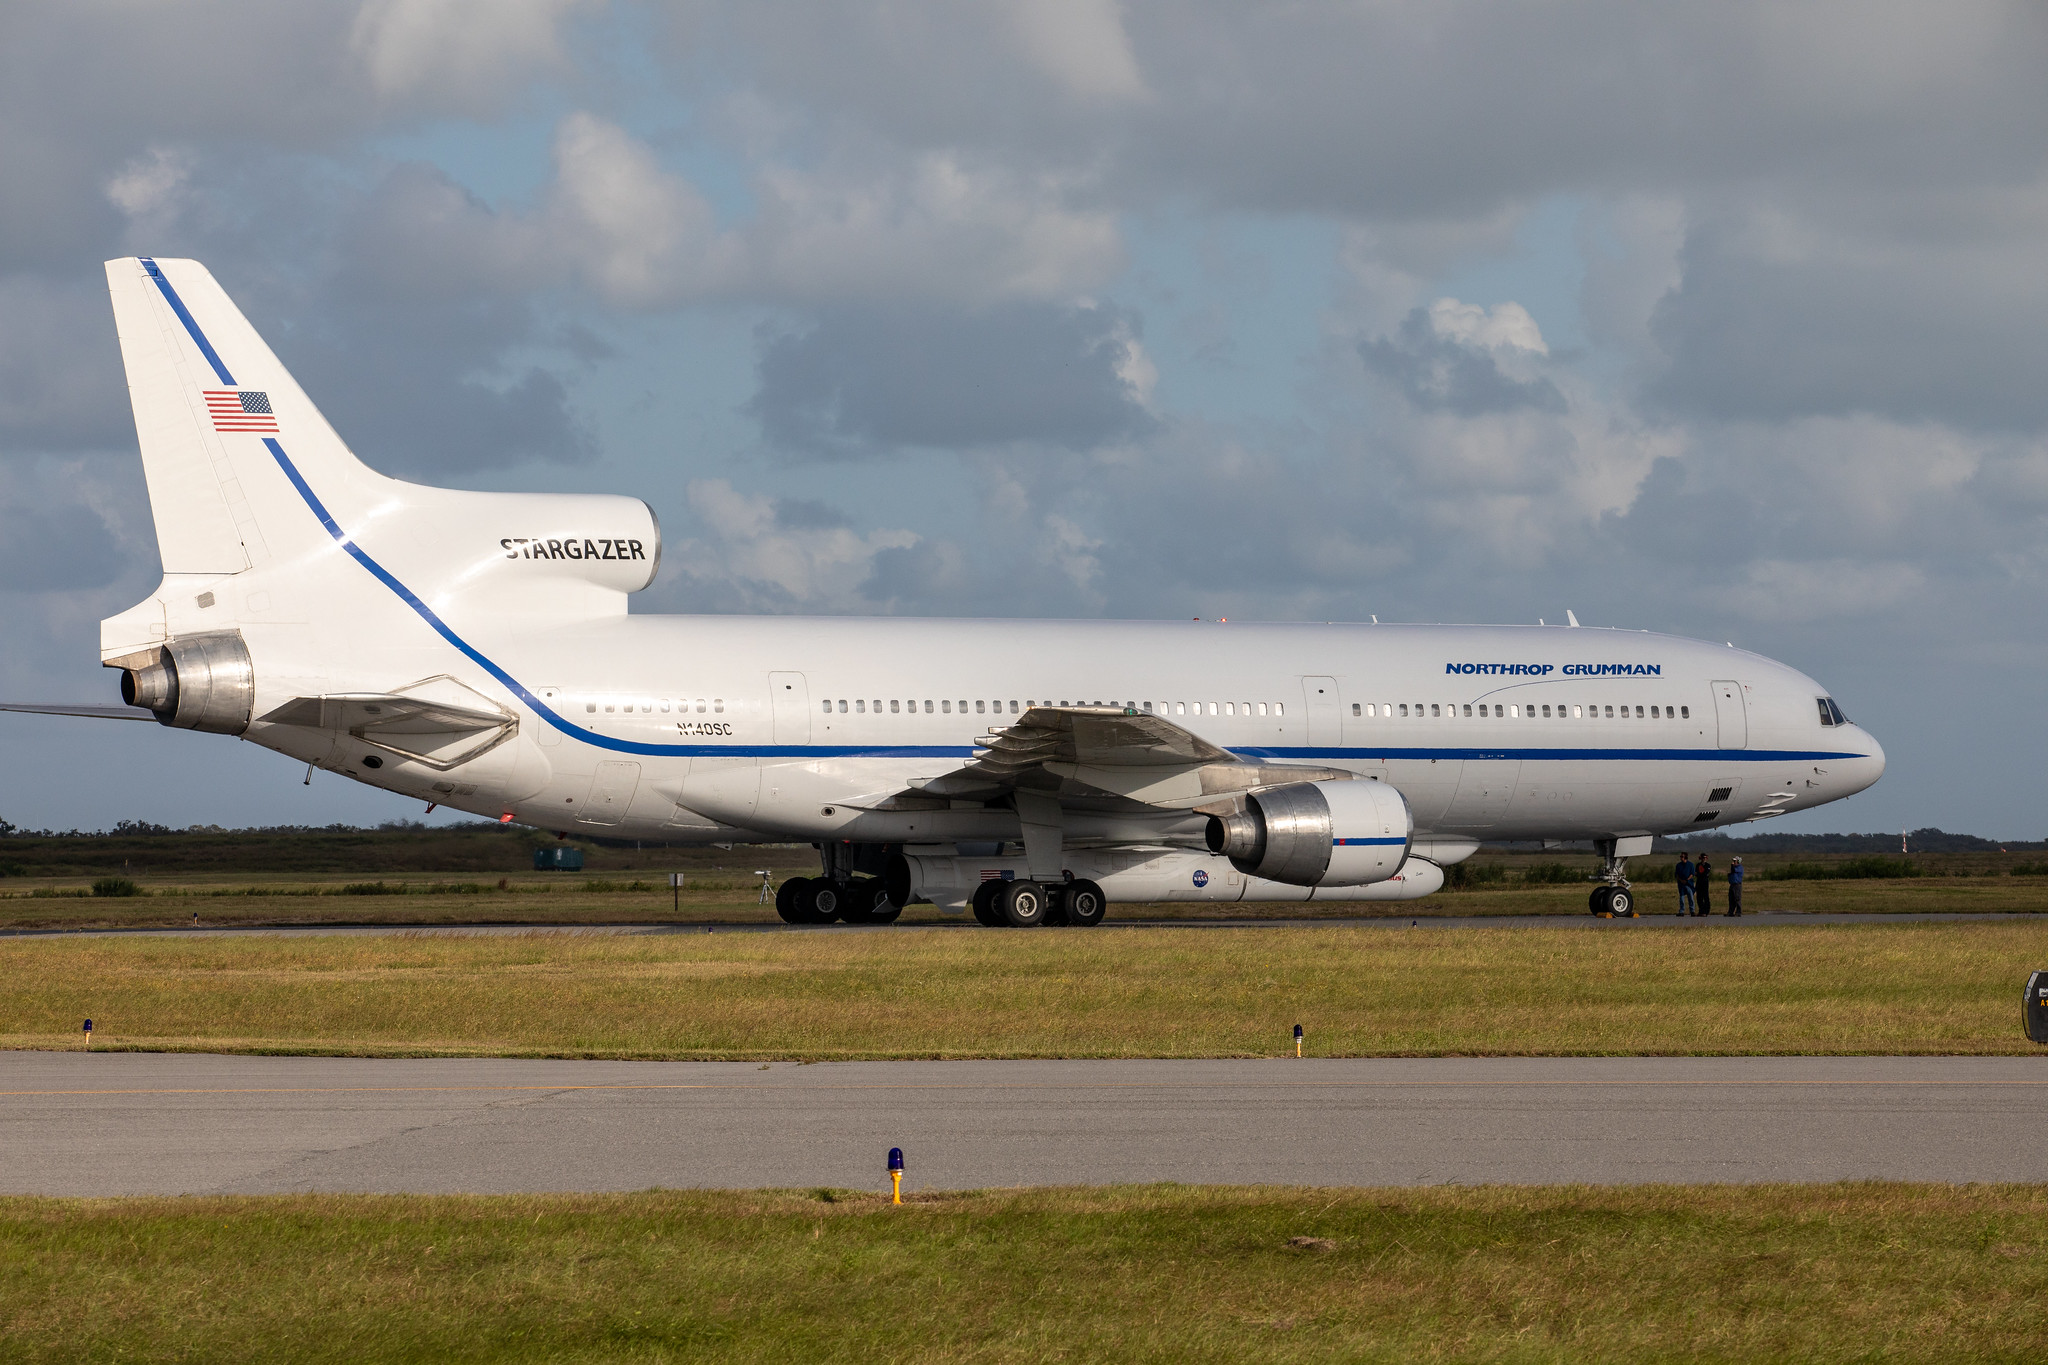 Northrop Grumman's L-1011 Stargazer aircraft has arrived at the Skid Strip at Cape Canaveral Air Force Station in Florida on Oct. 1, 2019.